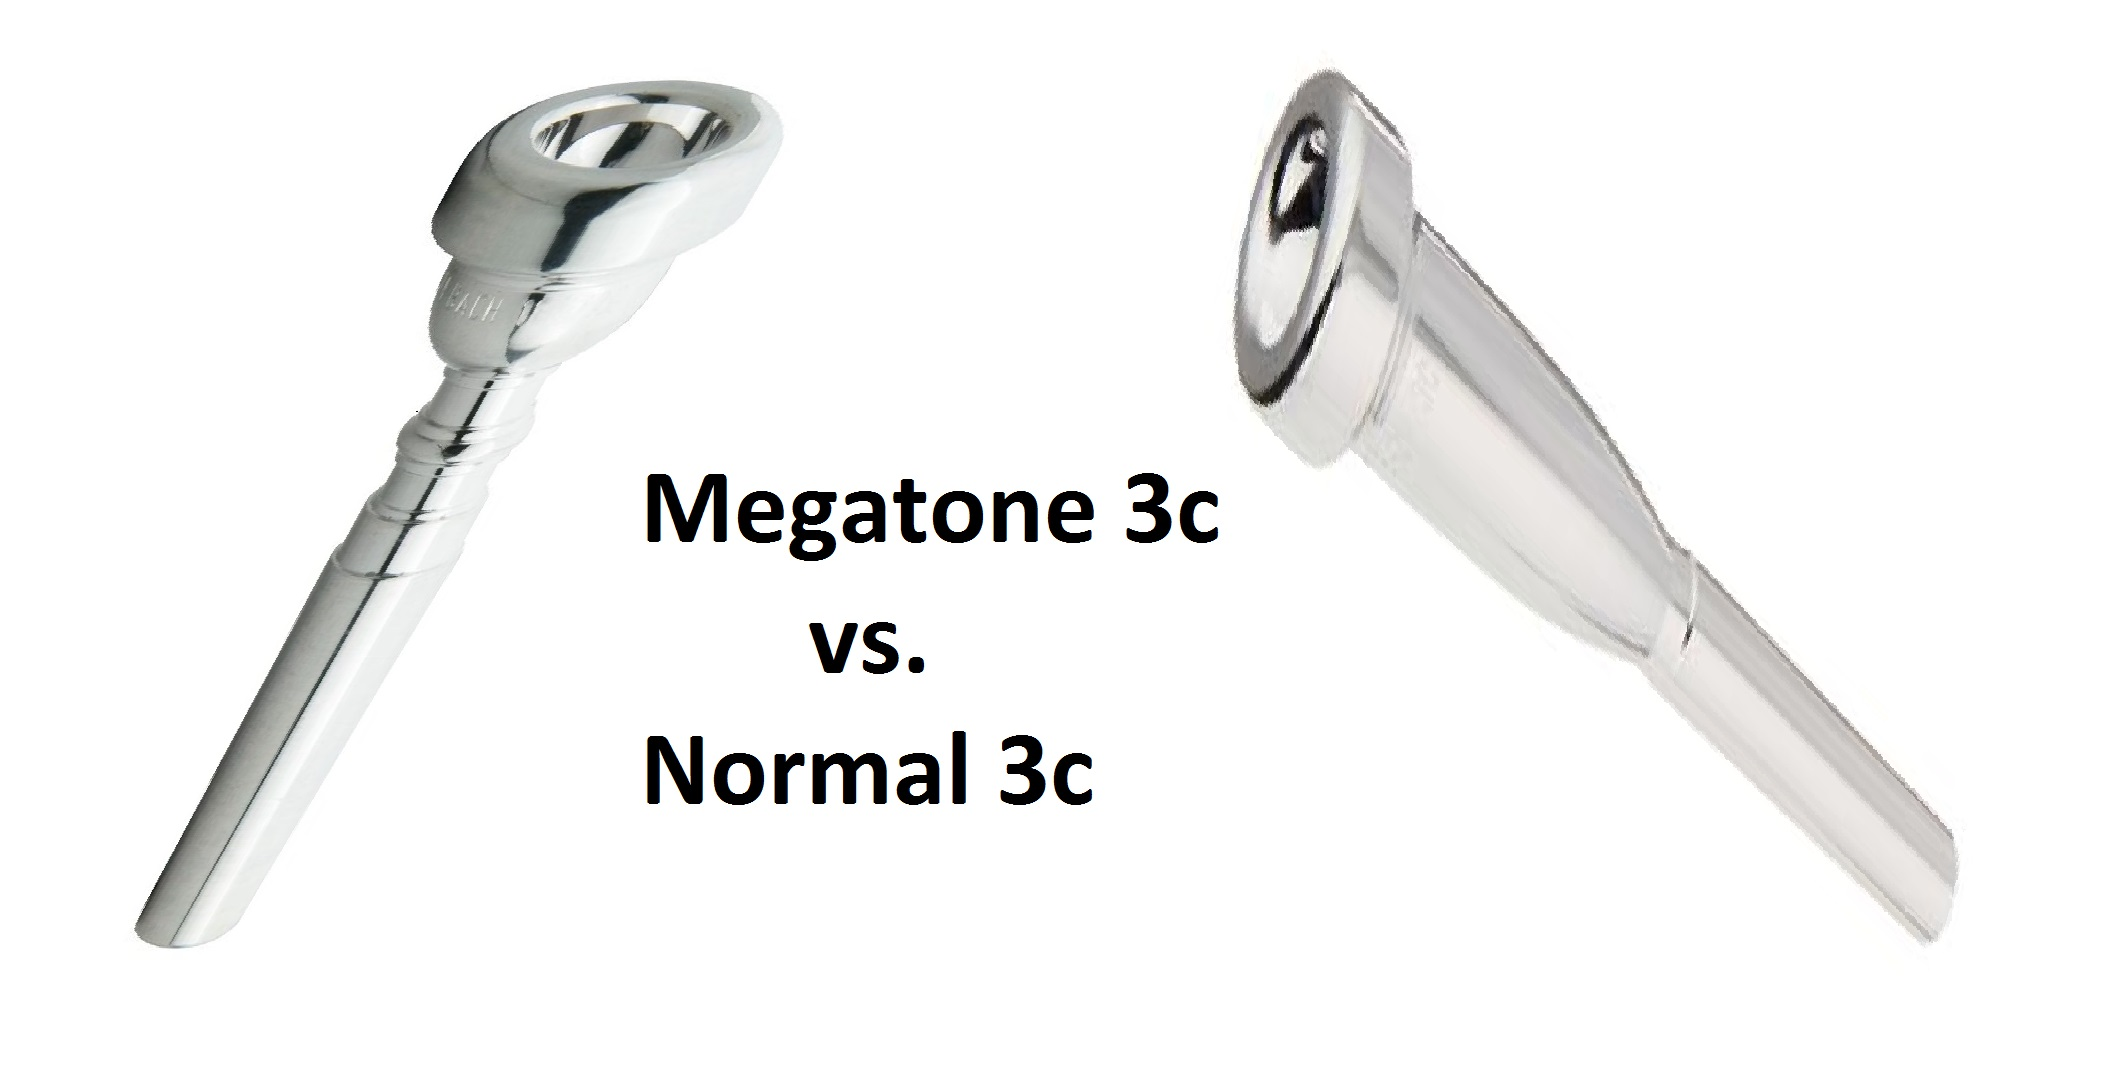 Bach 3c mouthpiece vs megatone